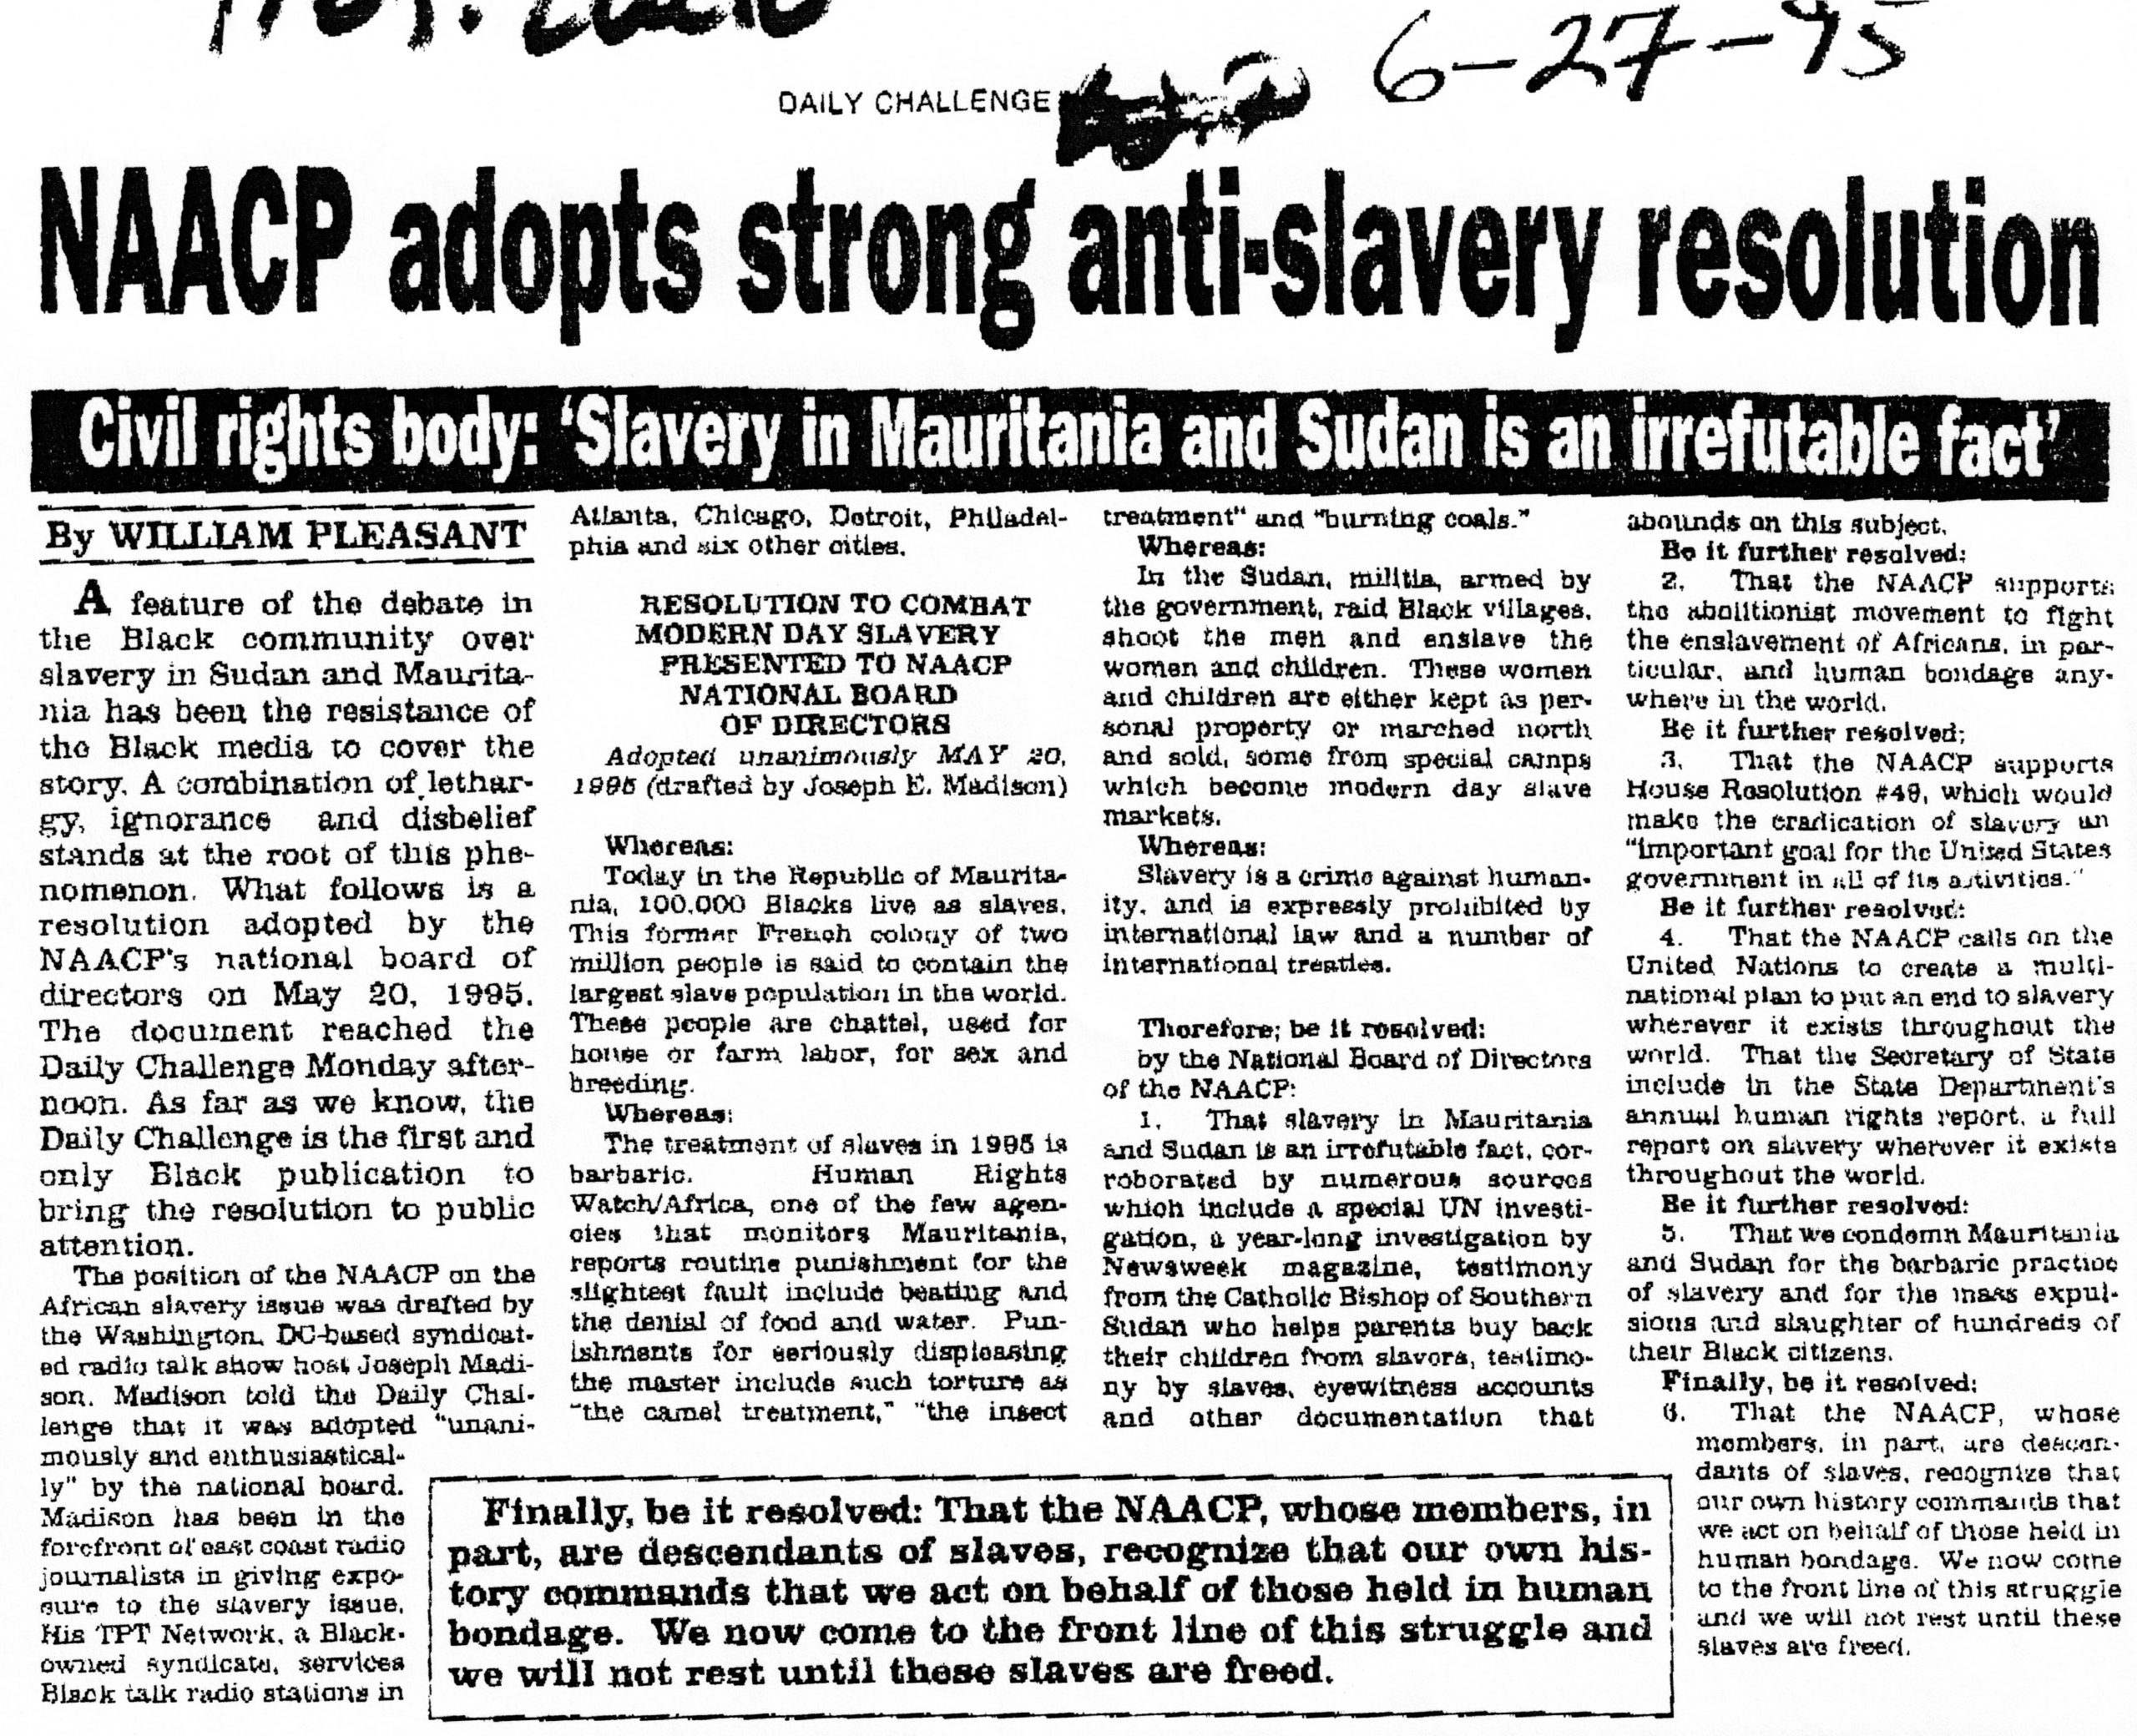 """William Pleasant, """"NAACP adopts strong anti-slavery resolution,"""" """"The Daily Challenge,"""" June 27, 1995"""